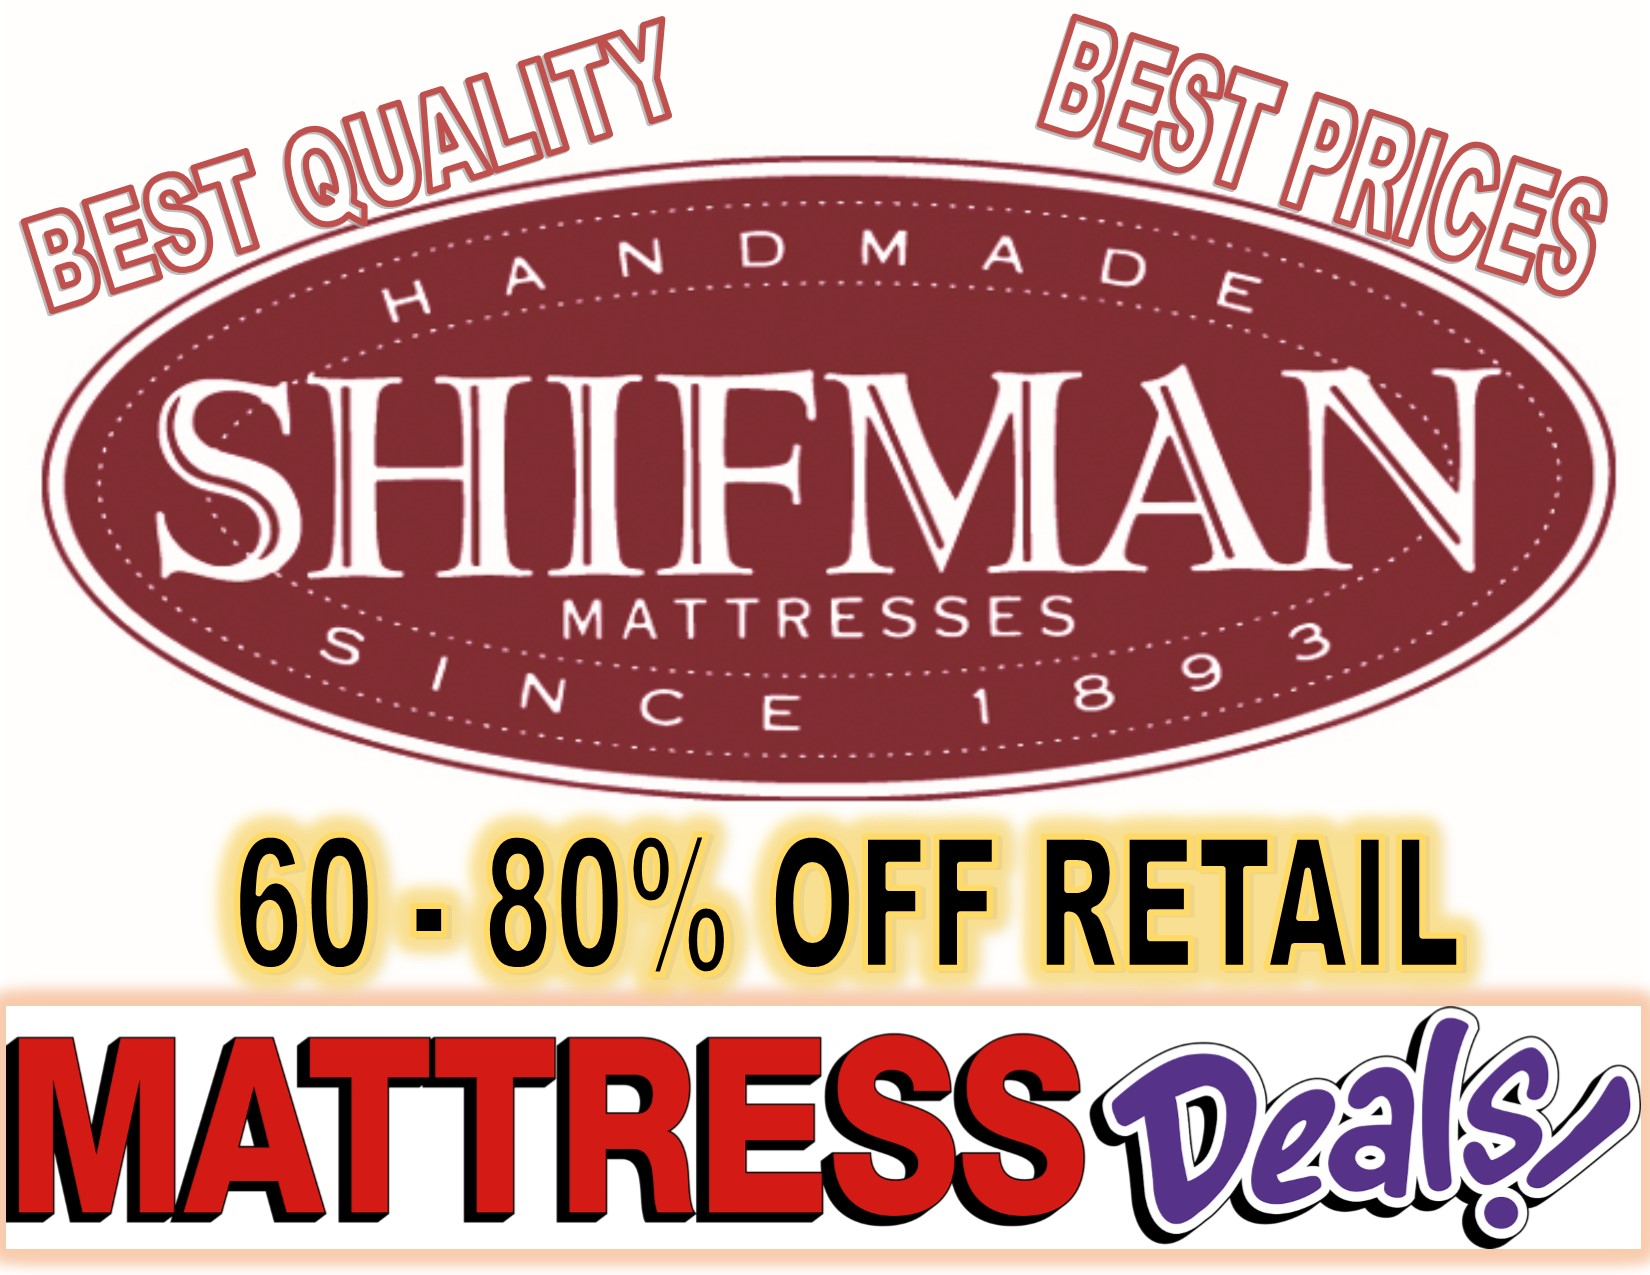 Mattress Deals image 79